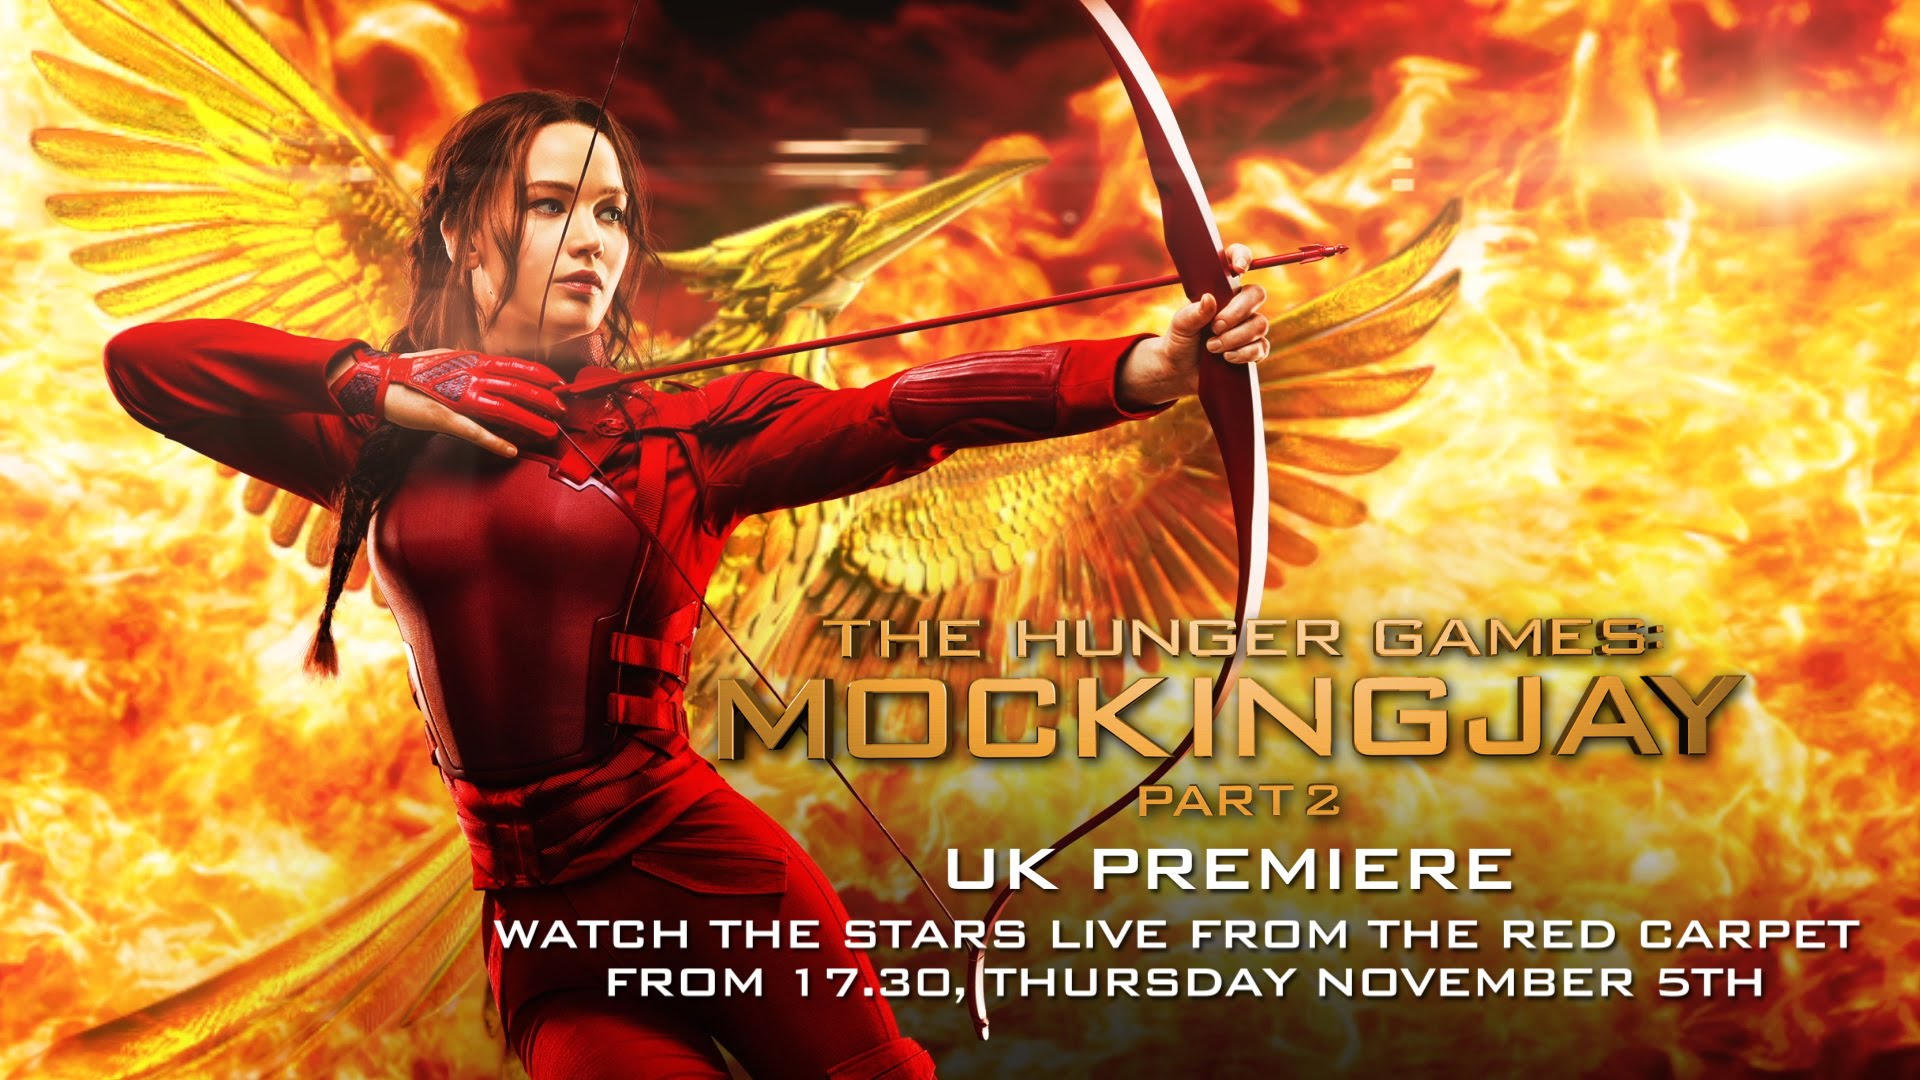 LIVE: The Hunger Games: Mockingjay – Part 2 UK Premiere